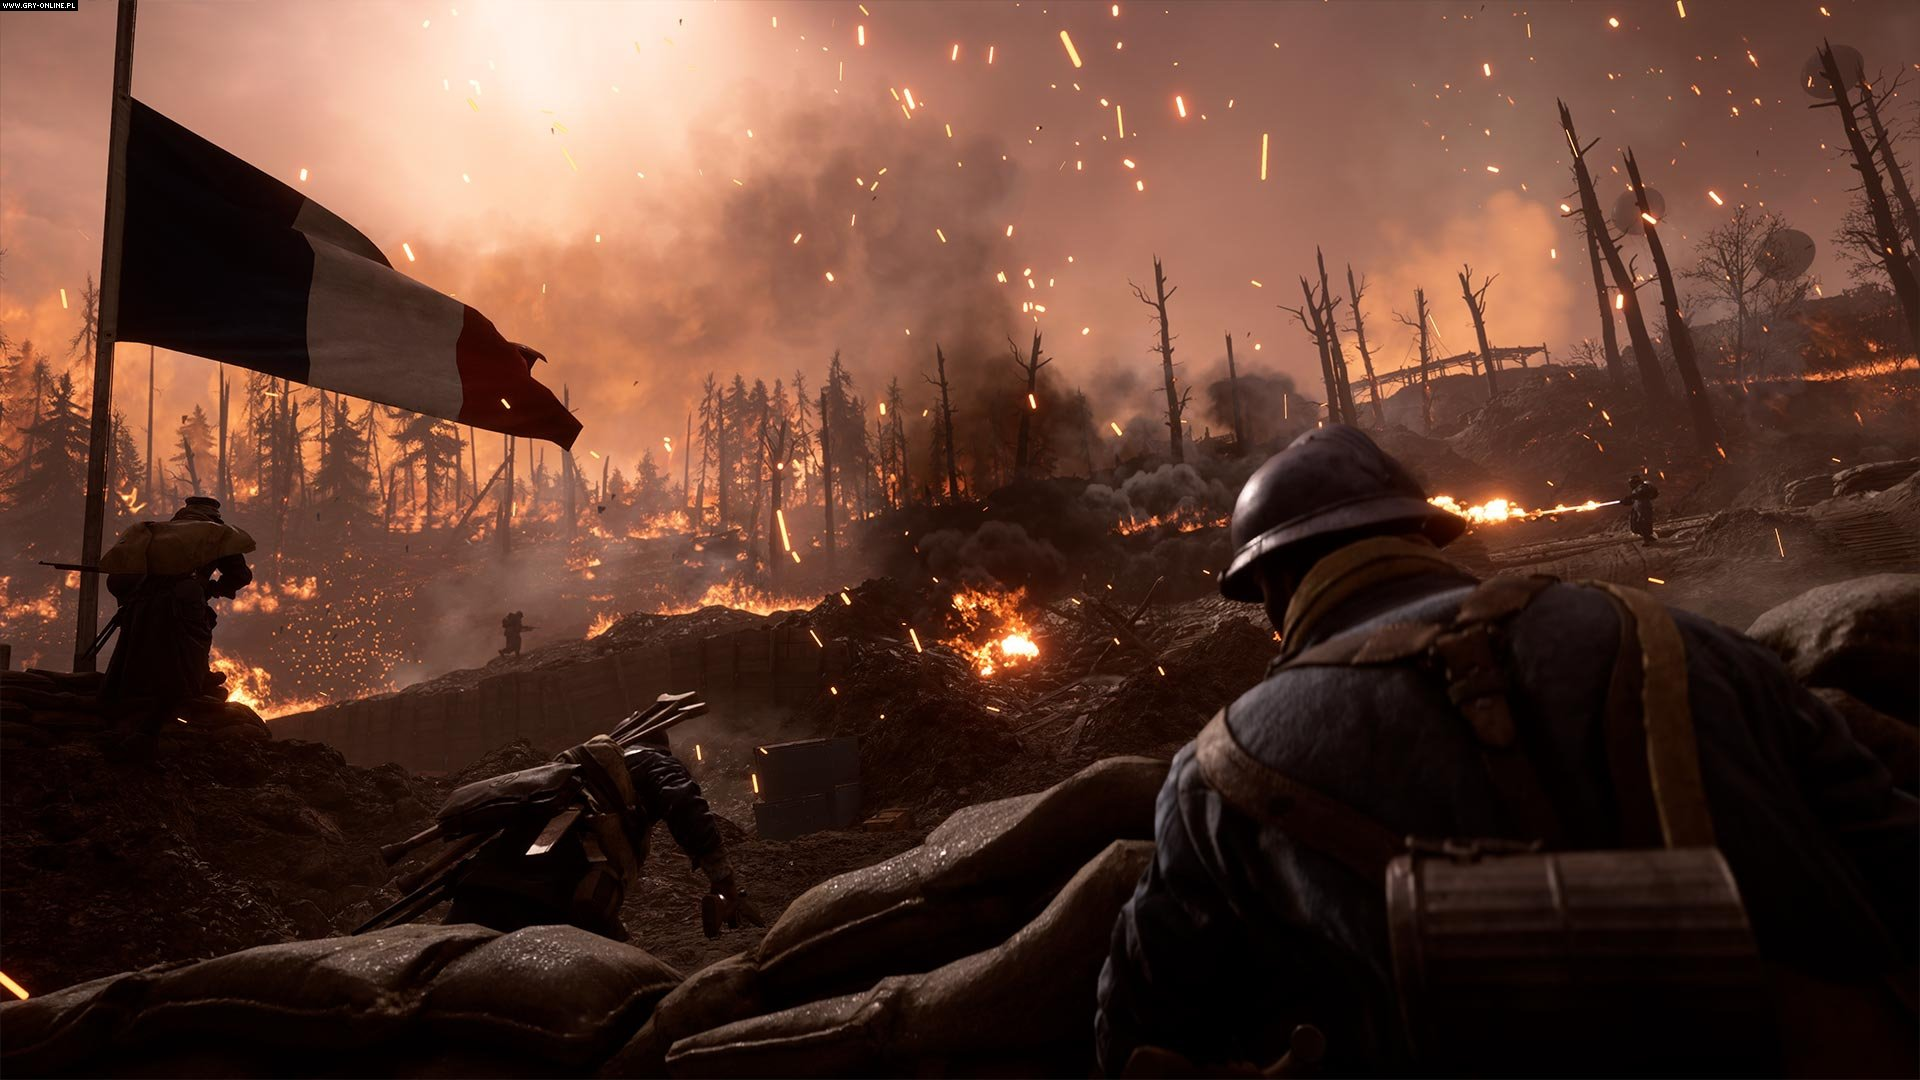 Battlefield 1: They Shall Not Pass PC, XONE, PS4 Games Image 2/7, EA DICE / Digital Illusions CE, Electronic Arts Inc.